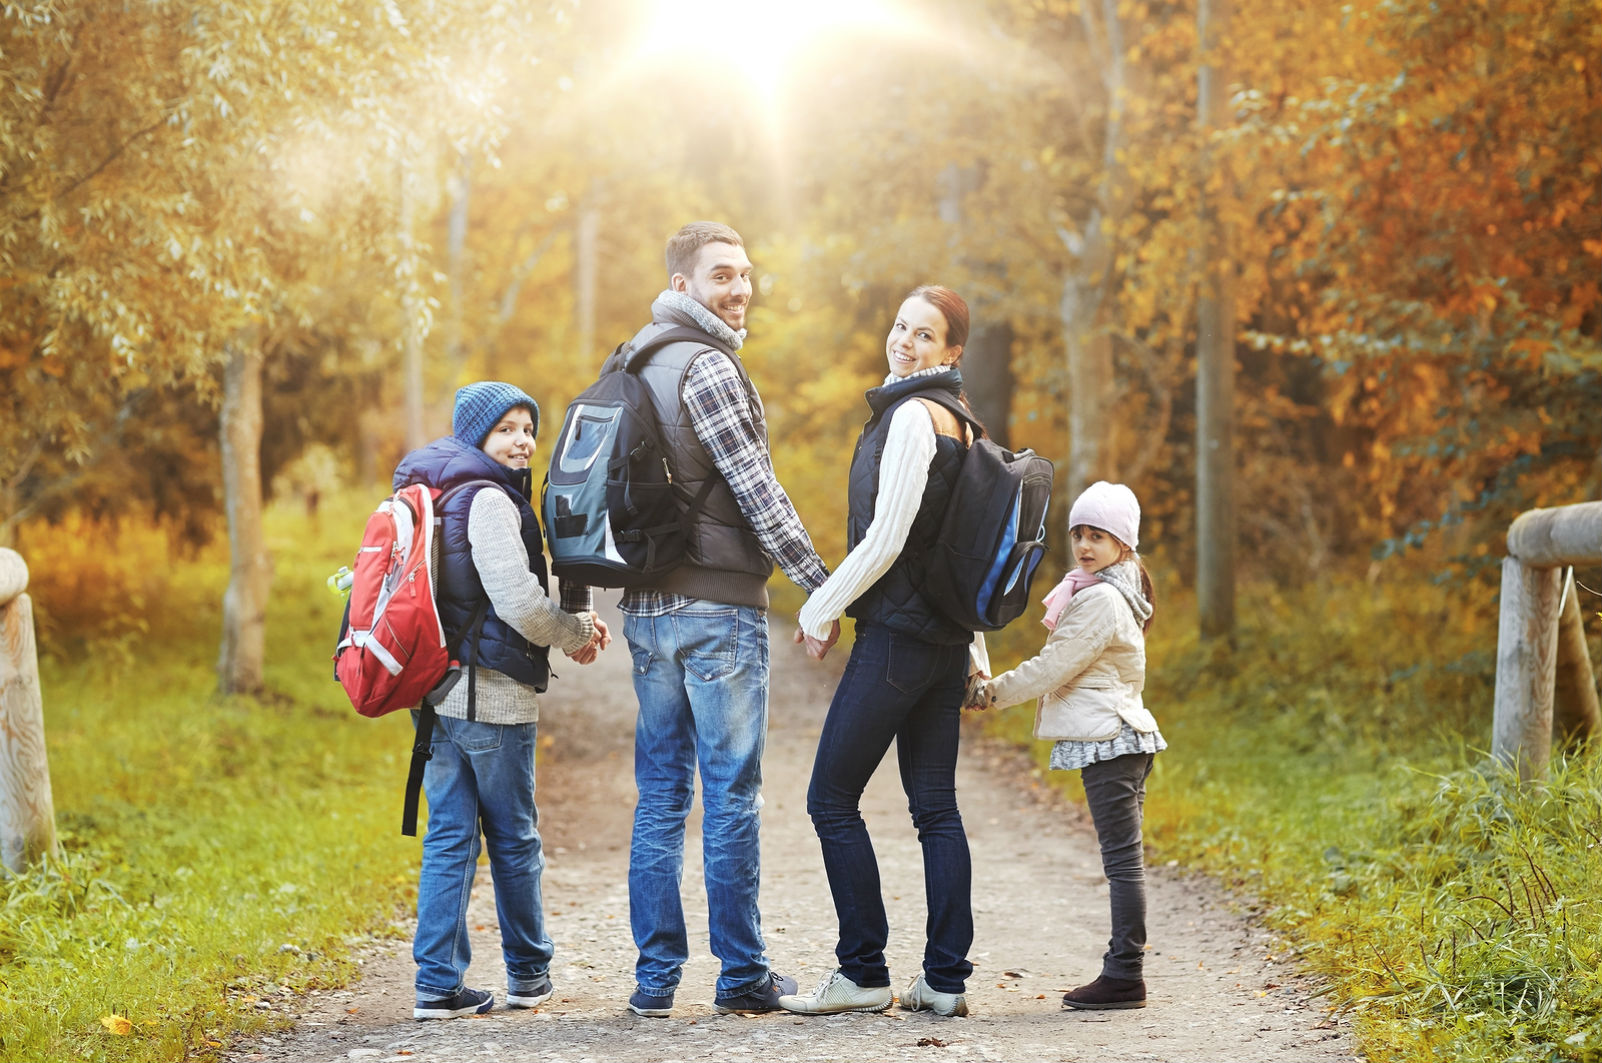 Ready For An Outdoor Adventure With Family? Make It Hassle-Free With These Tips!